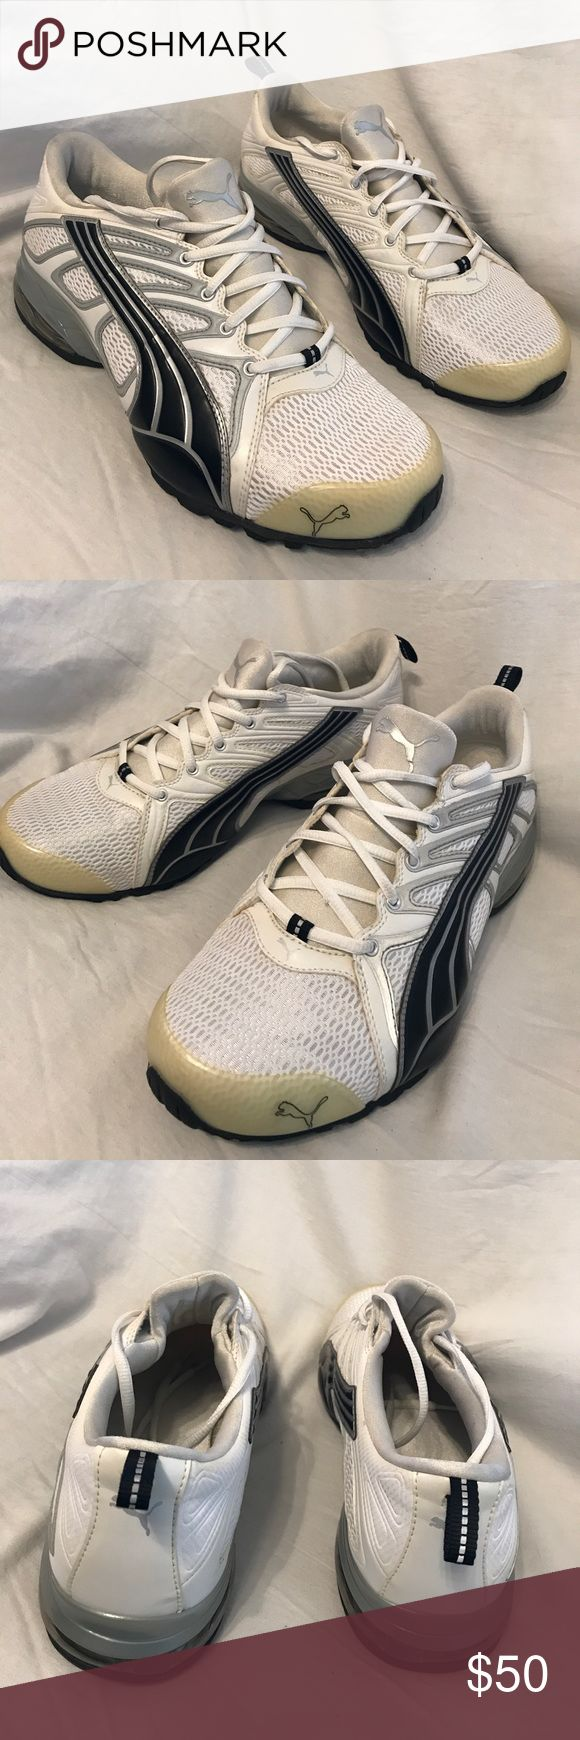 Like new Puma tennis shoes These babies look awesome, feel great , and are made for performance. So new , you can still see the texture on the nubs of the pattern on the  sole. No wear at all. Knit and leather upper Puma Shoes Athletic Shoes